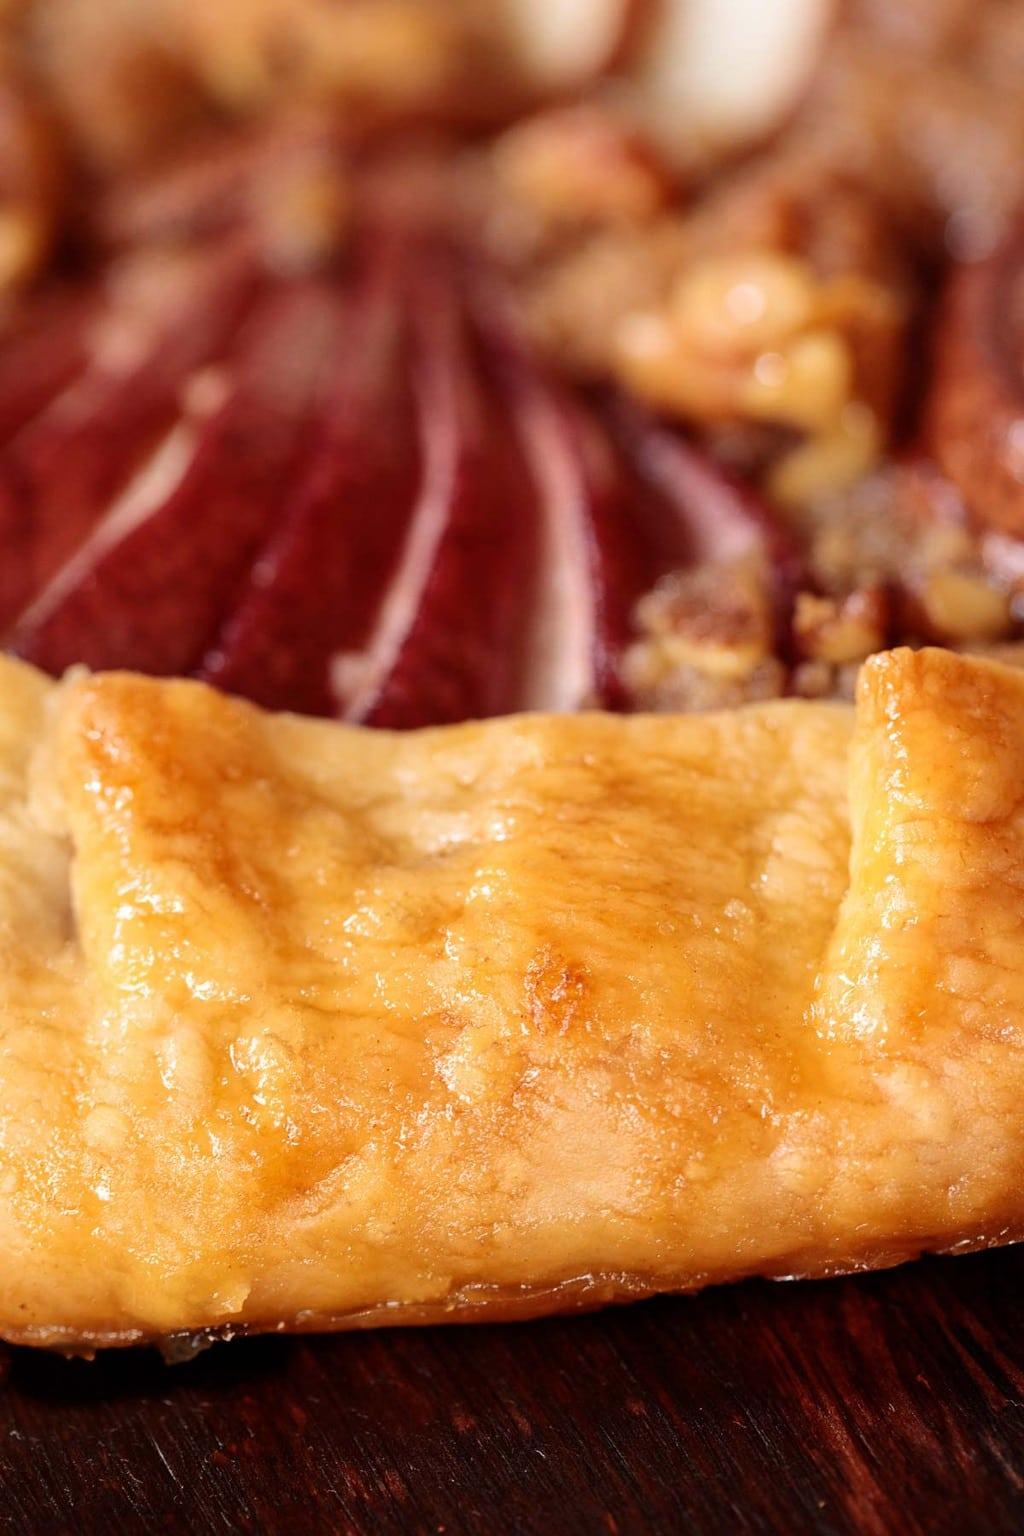 Extreme closeup photo of the crust of a Maple-Glazed Red Pear Galette.